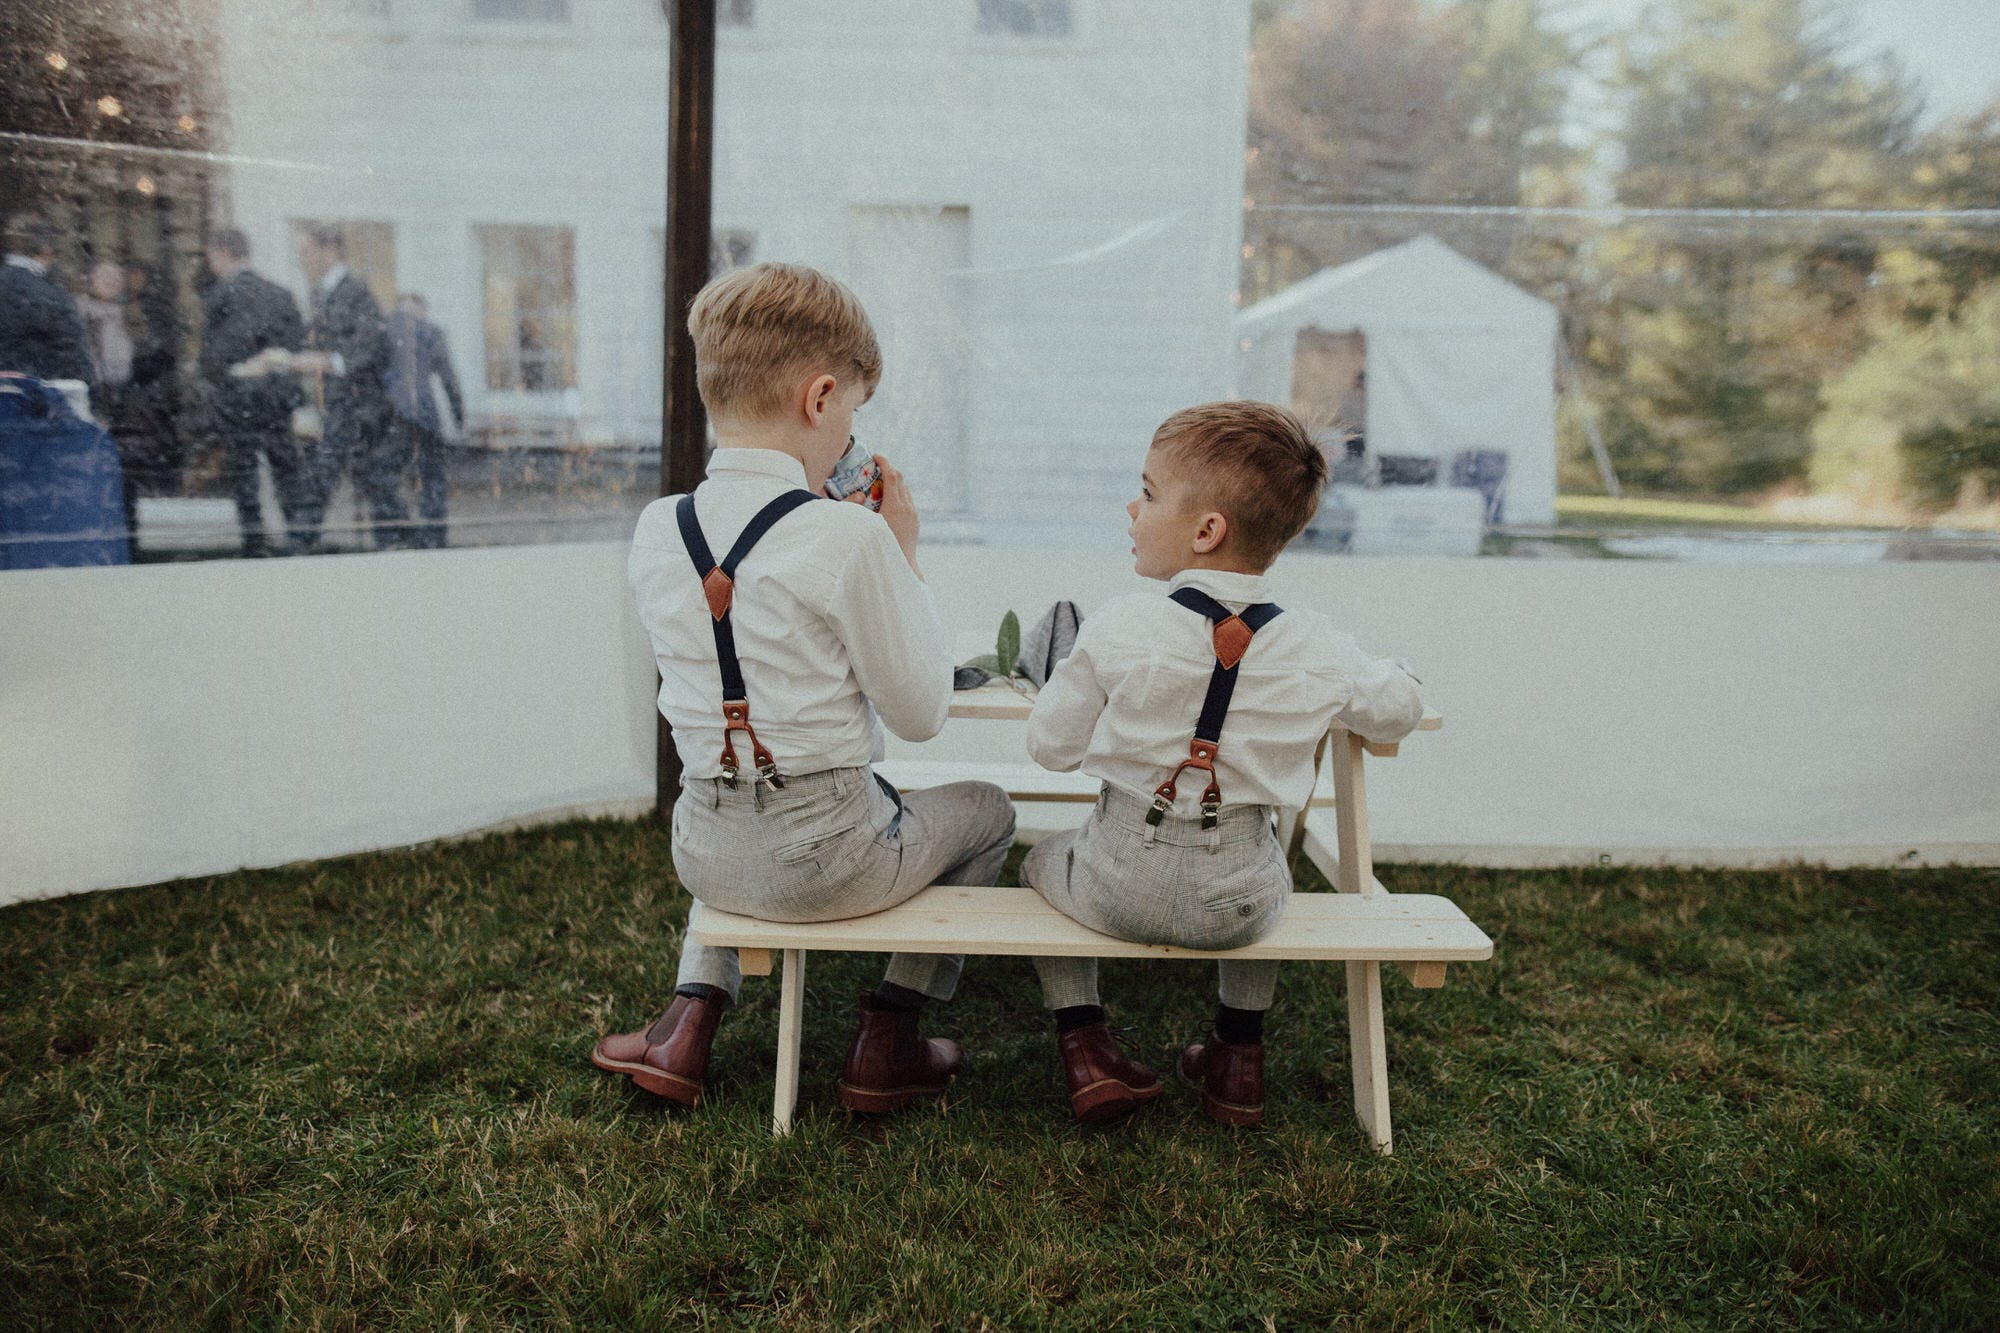 two ring bearers at their own table at a wedding